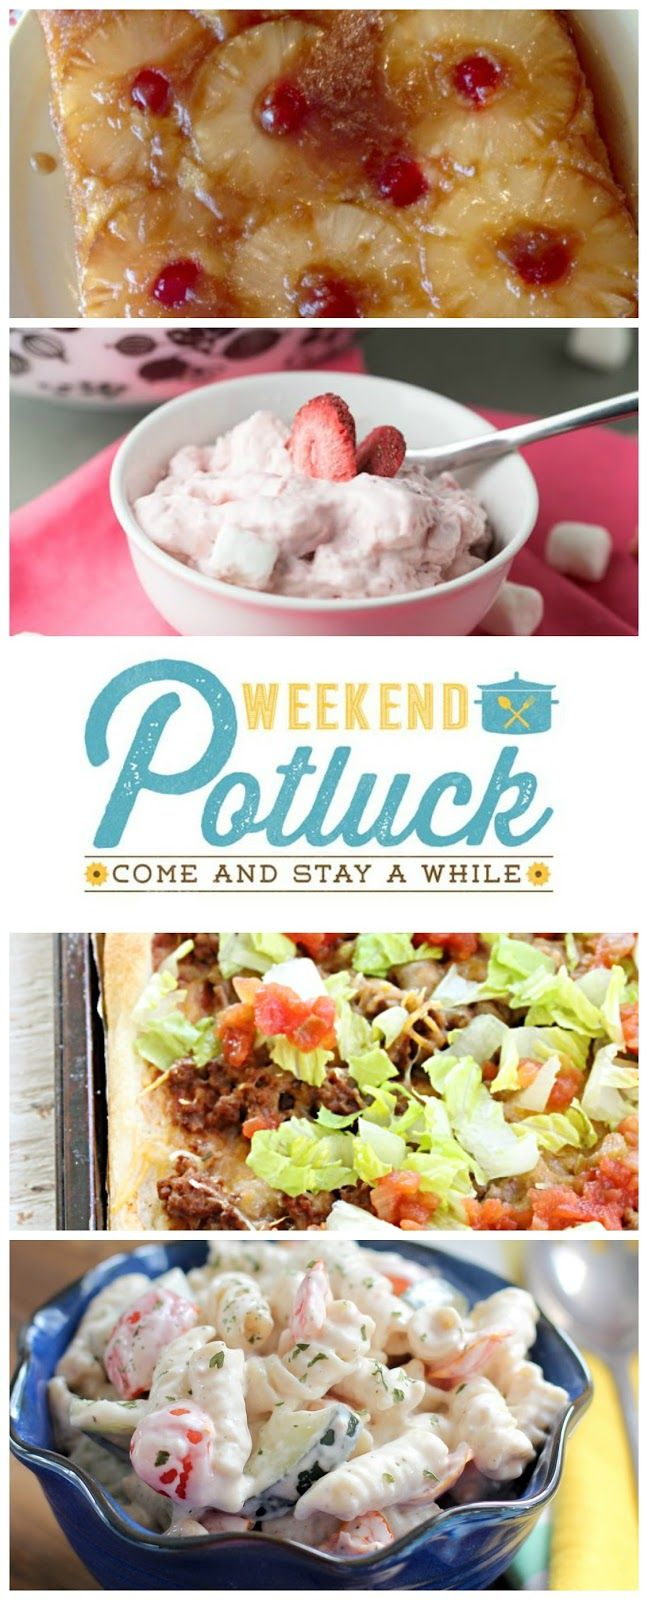 Recipes featured at Weekend Potluck #271 include: Vintage Pineapple Upside Down Cake, Taco Pizza, Strawberry Fluff, and Ranch Pasta Salad.